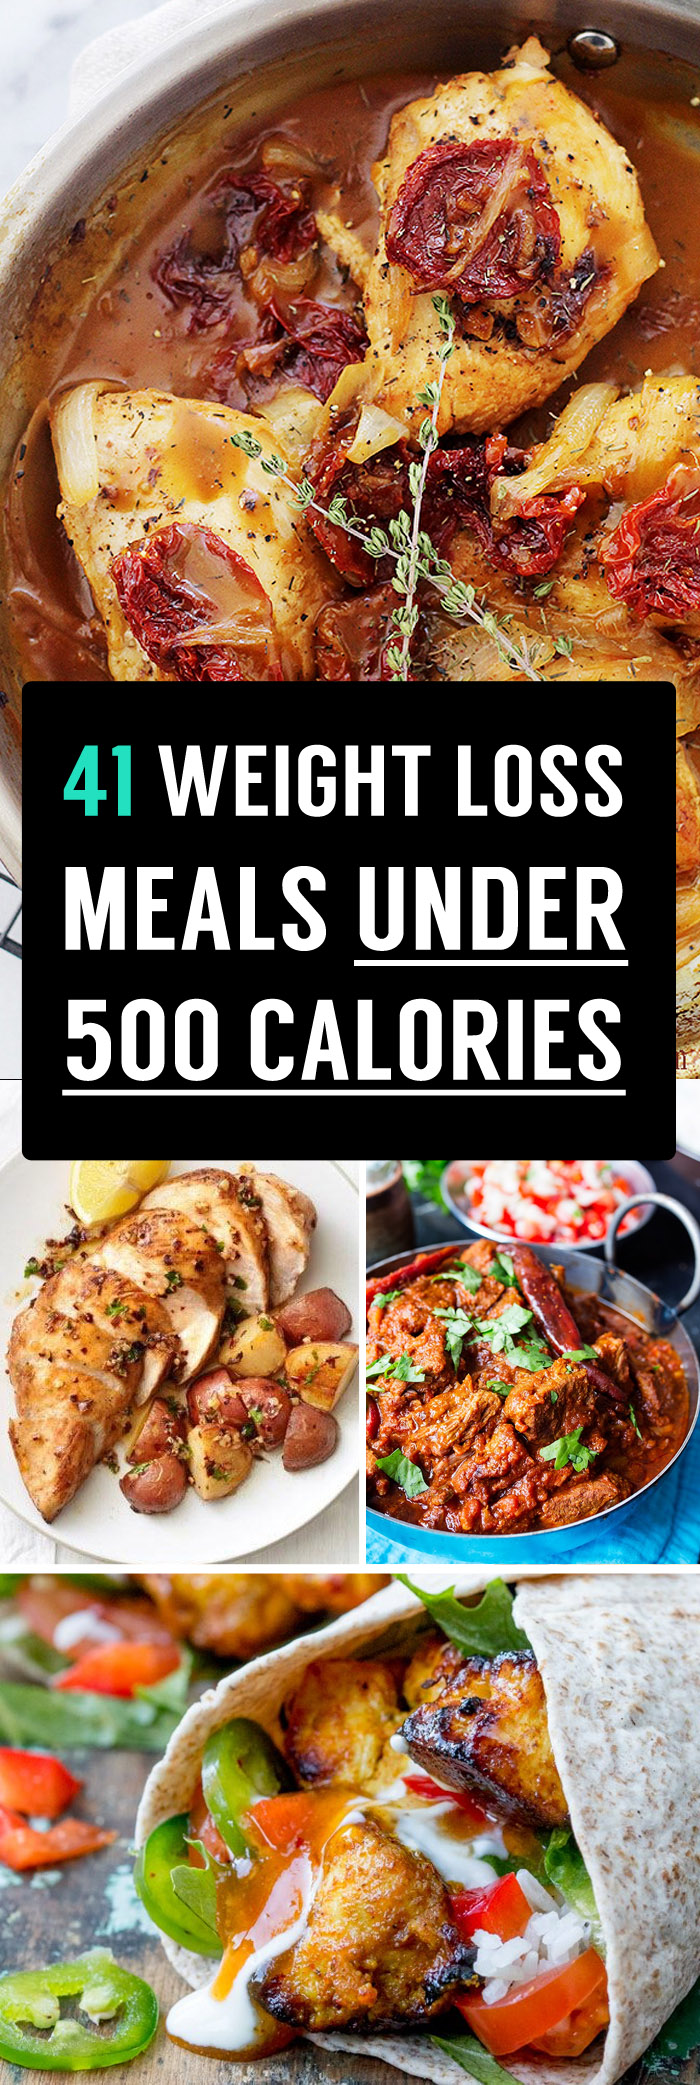 how to lose 500 calories fast